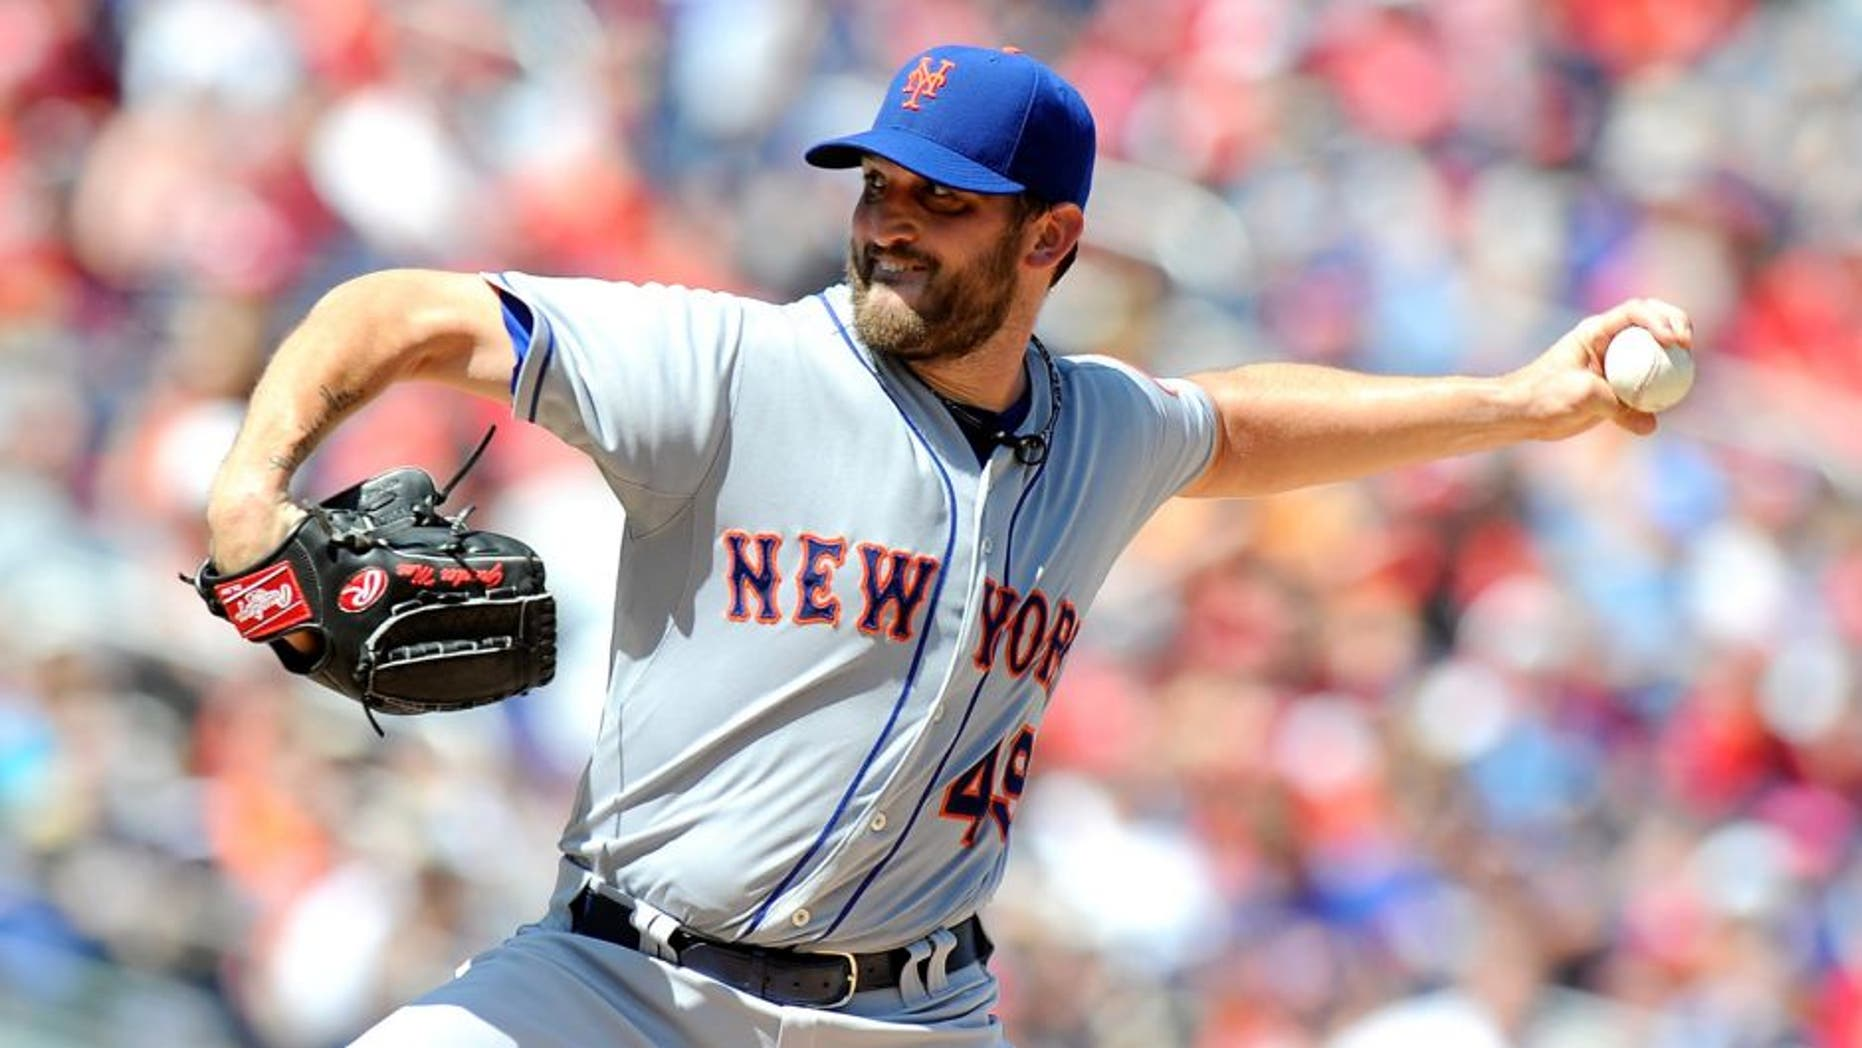 WASHINGTON, DC - SEPTEMBER 07: Jonathon Niese #49 of the New York Mets pitches in the first inning against the Washington Nationals at Nationals Park on September 7, 2015 in Washington, DC. (Photo by Greg Fiume/Getty Images)